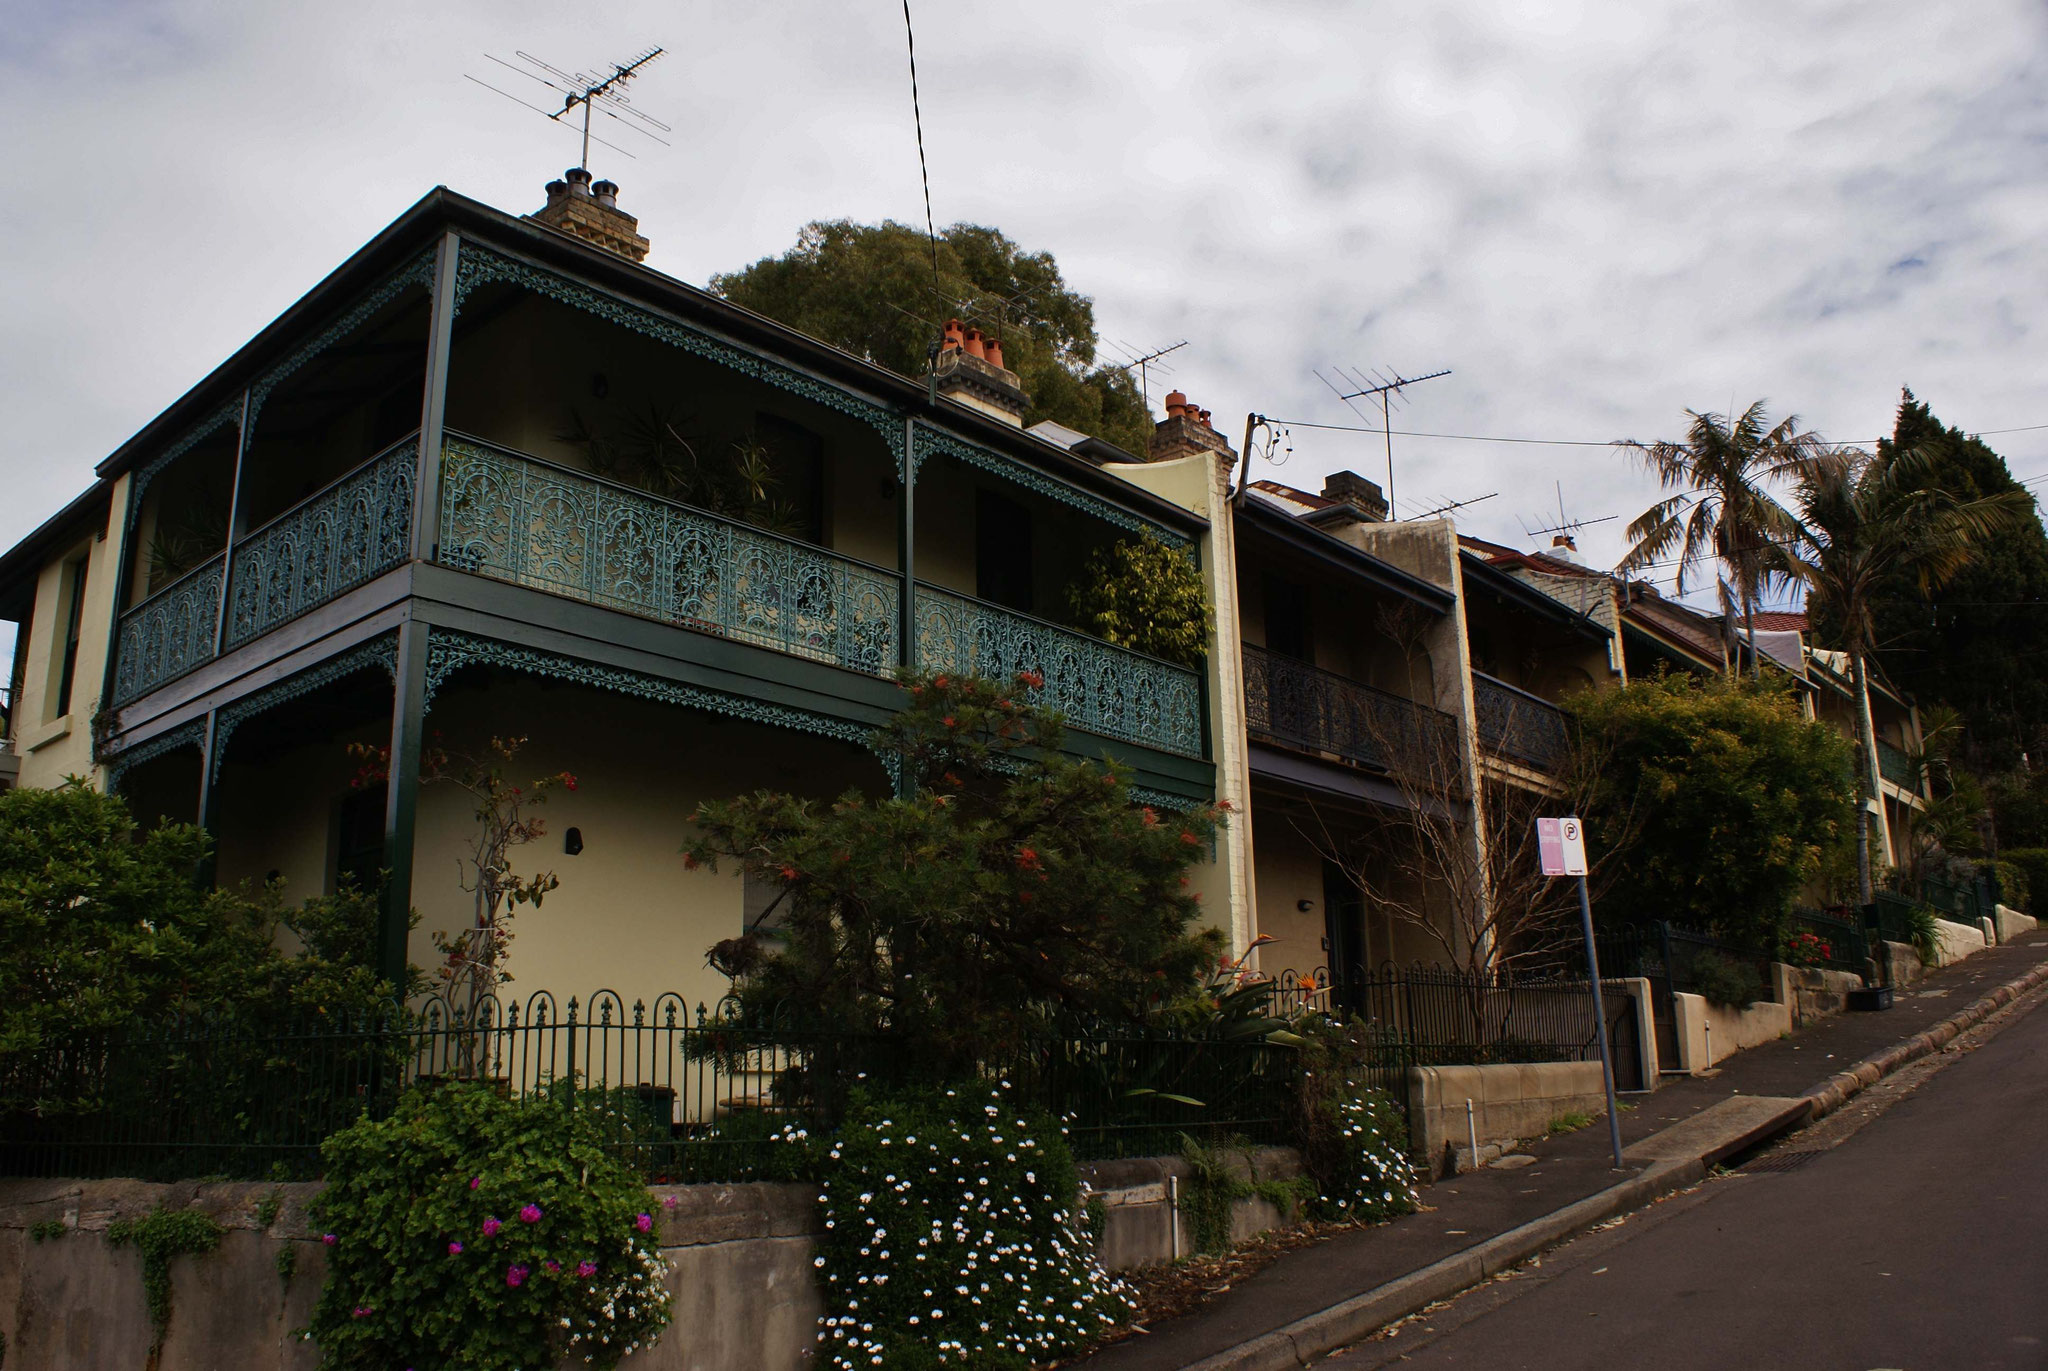 Luxuswohnviertel in Sydney